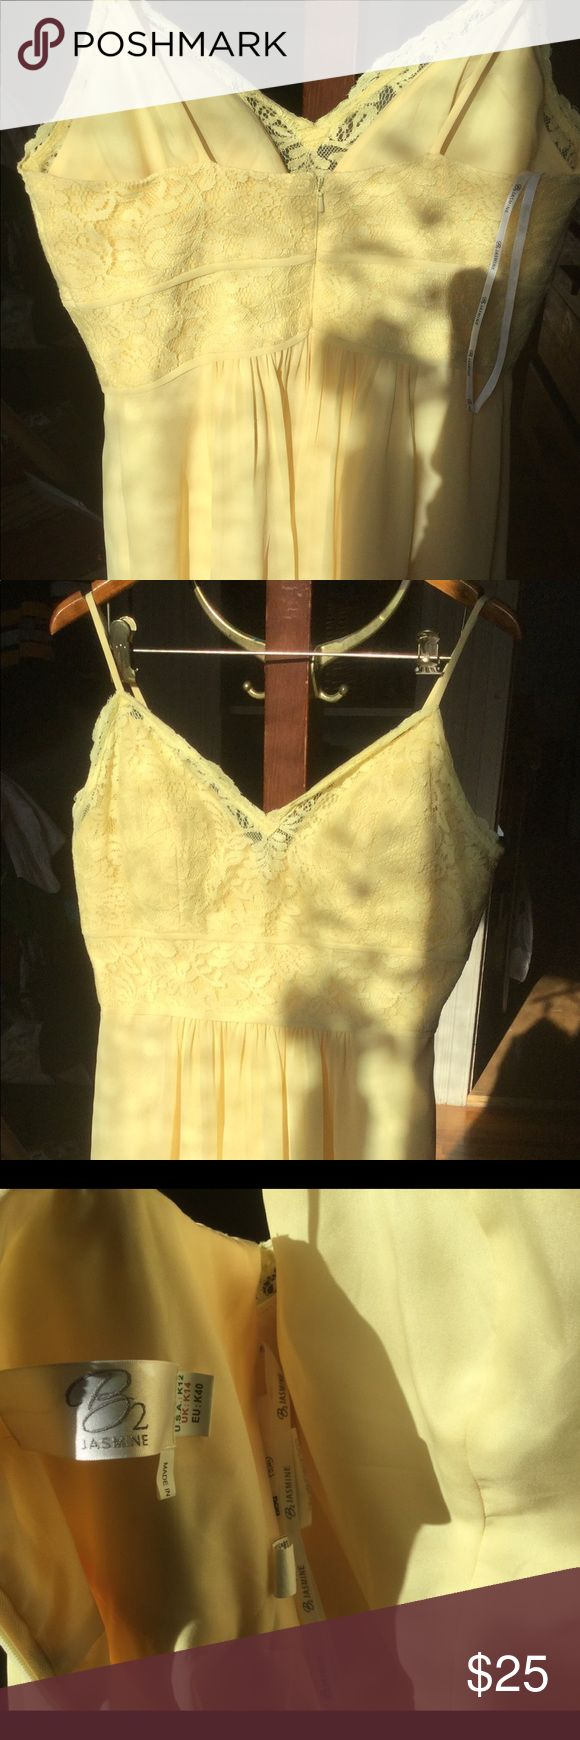 Stunning pale yellow dress size 12 nwot Never worn, this beautiful dress is perfect for most any occasion that requires a bit of feeling sensual and elegant. Soft and pretty, light yellow color is gorgeous Jasmine Dresses